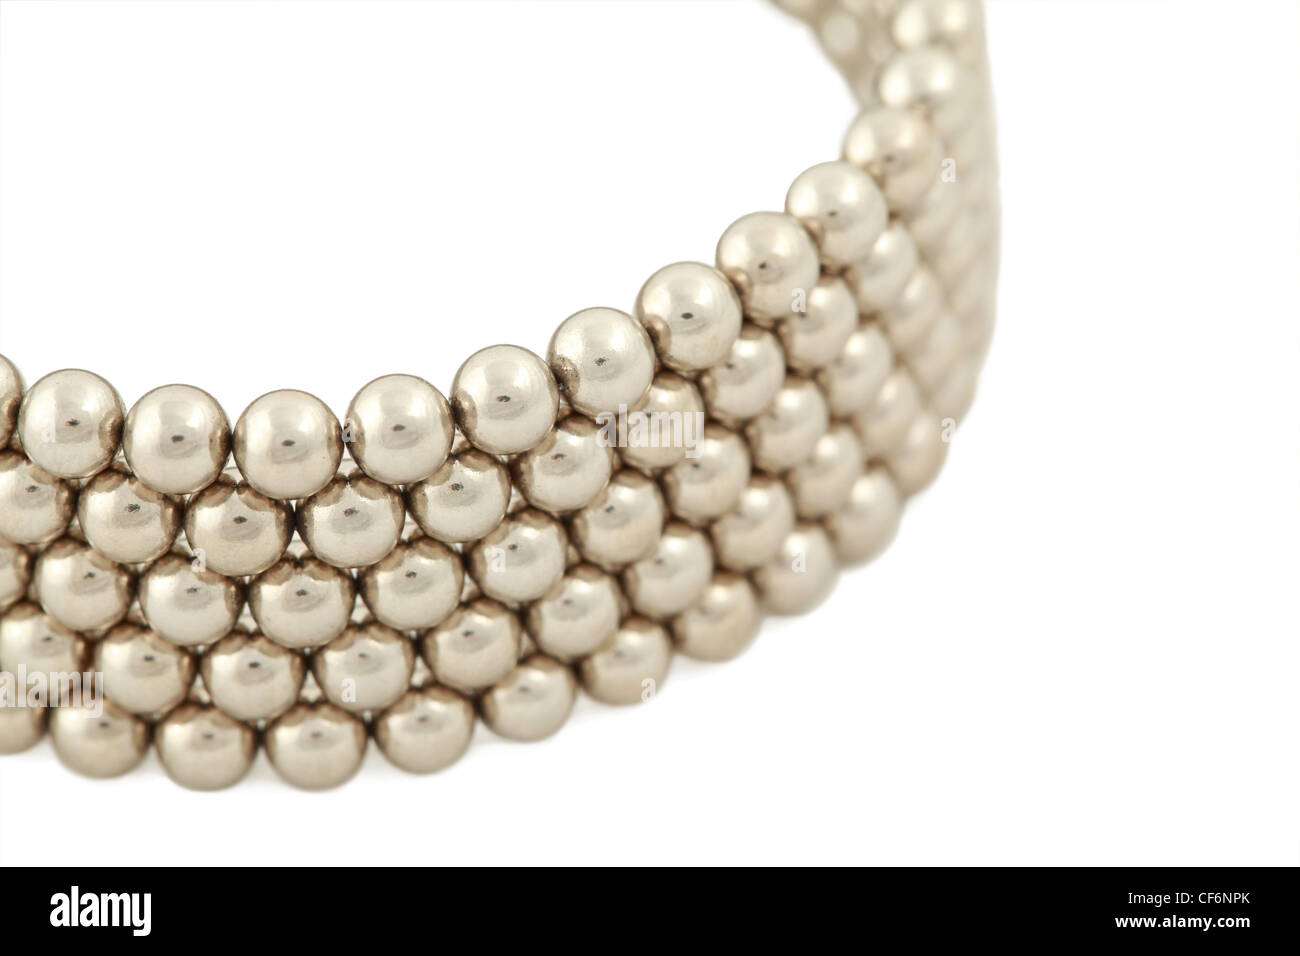 Part of bangle from beads near-by on  white background - Stock Image